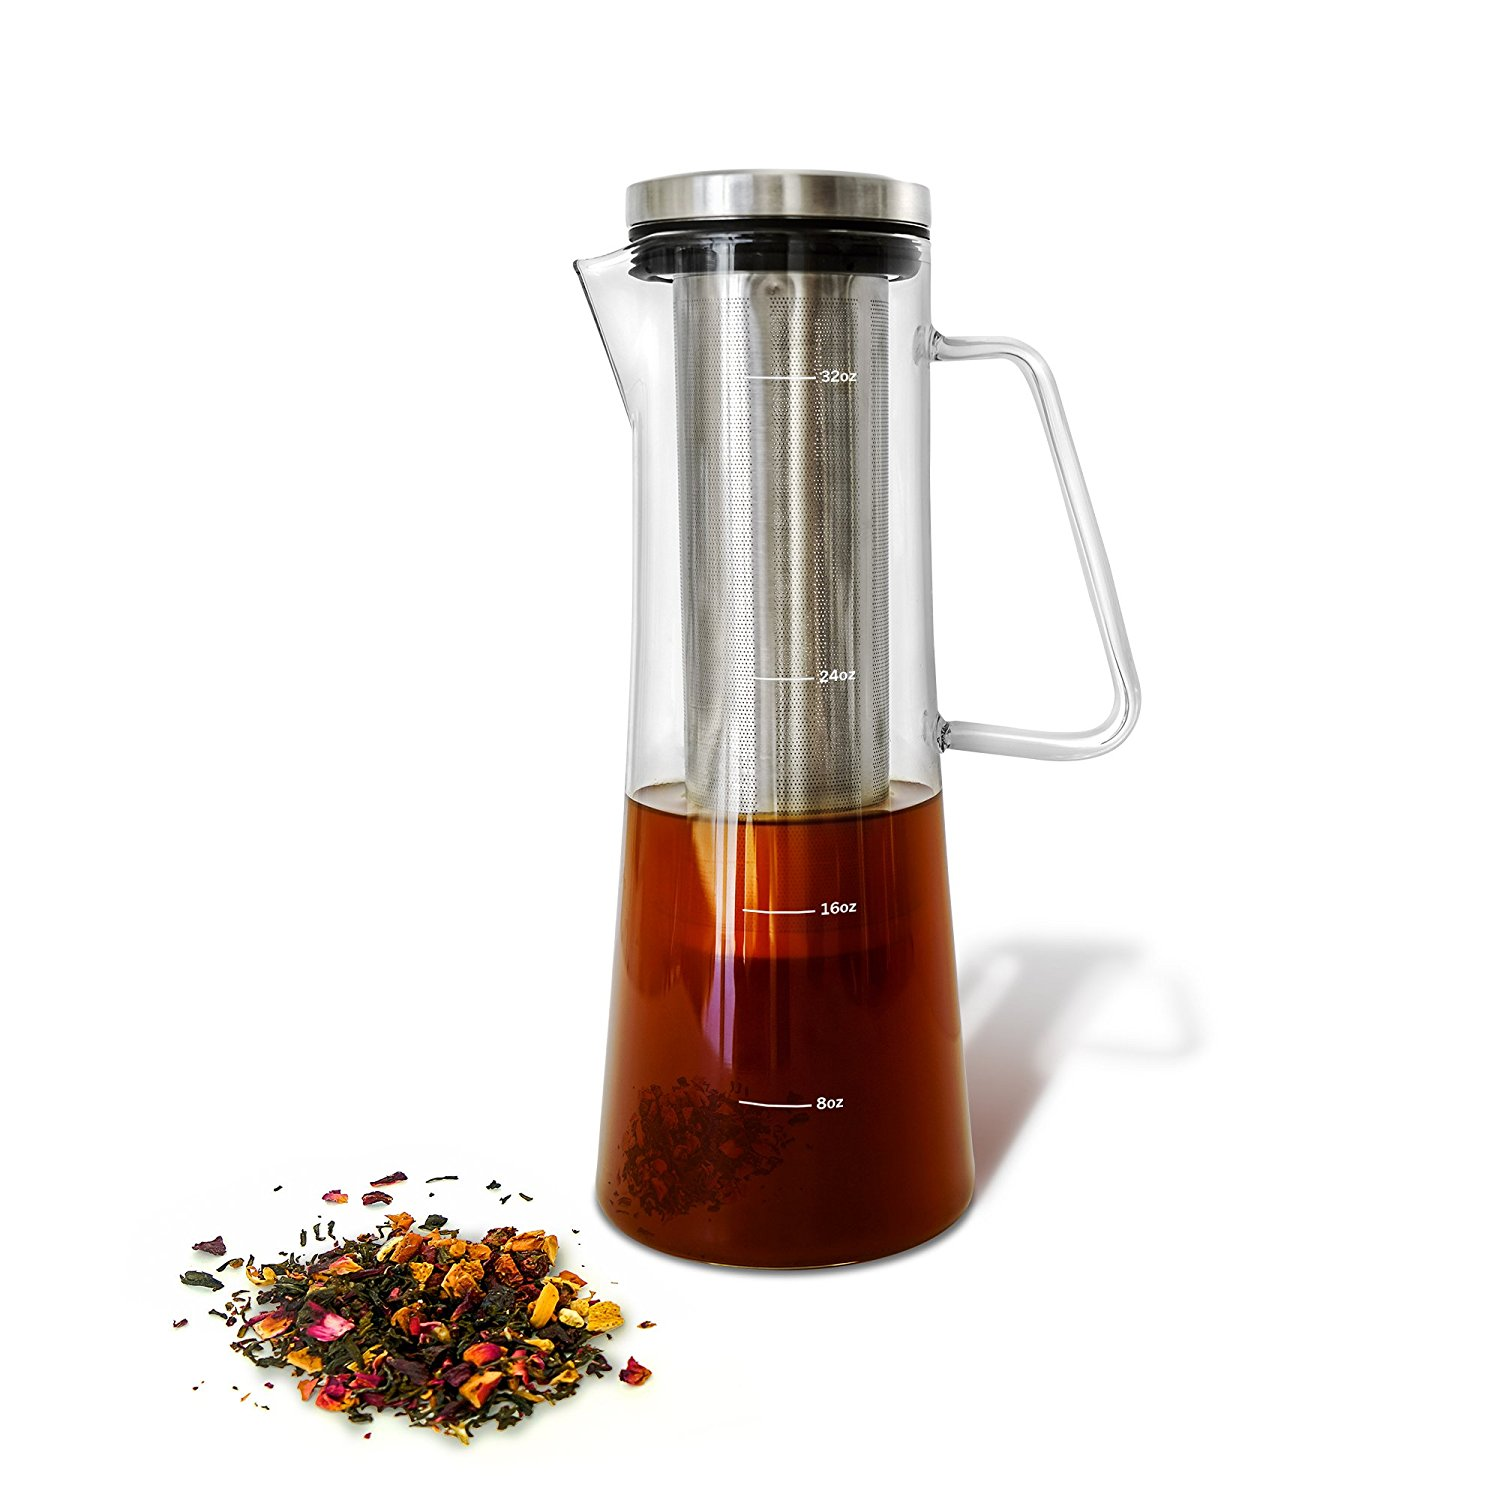 Cold Brew Iced Coffee Maker and Tea Infuser with Spout3 - BuyMoreCoffee.com